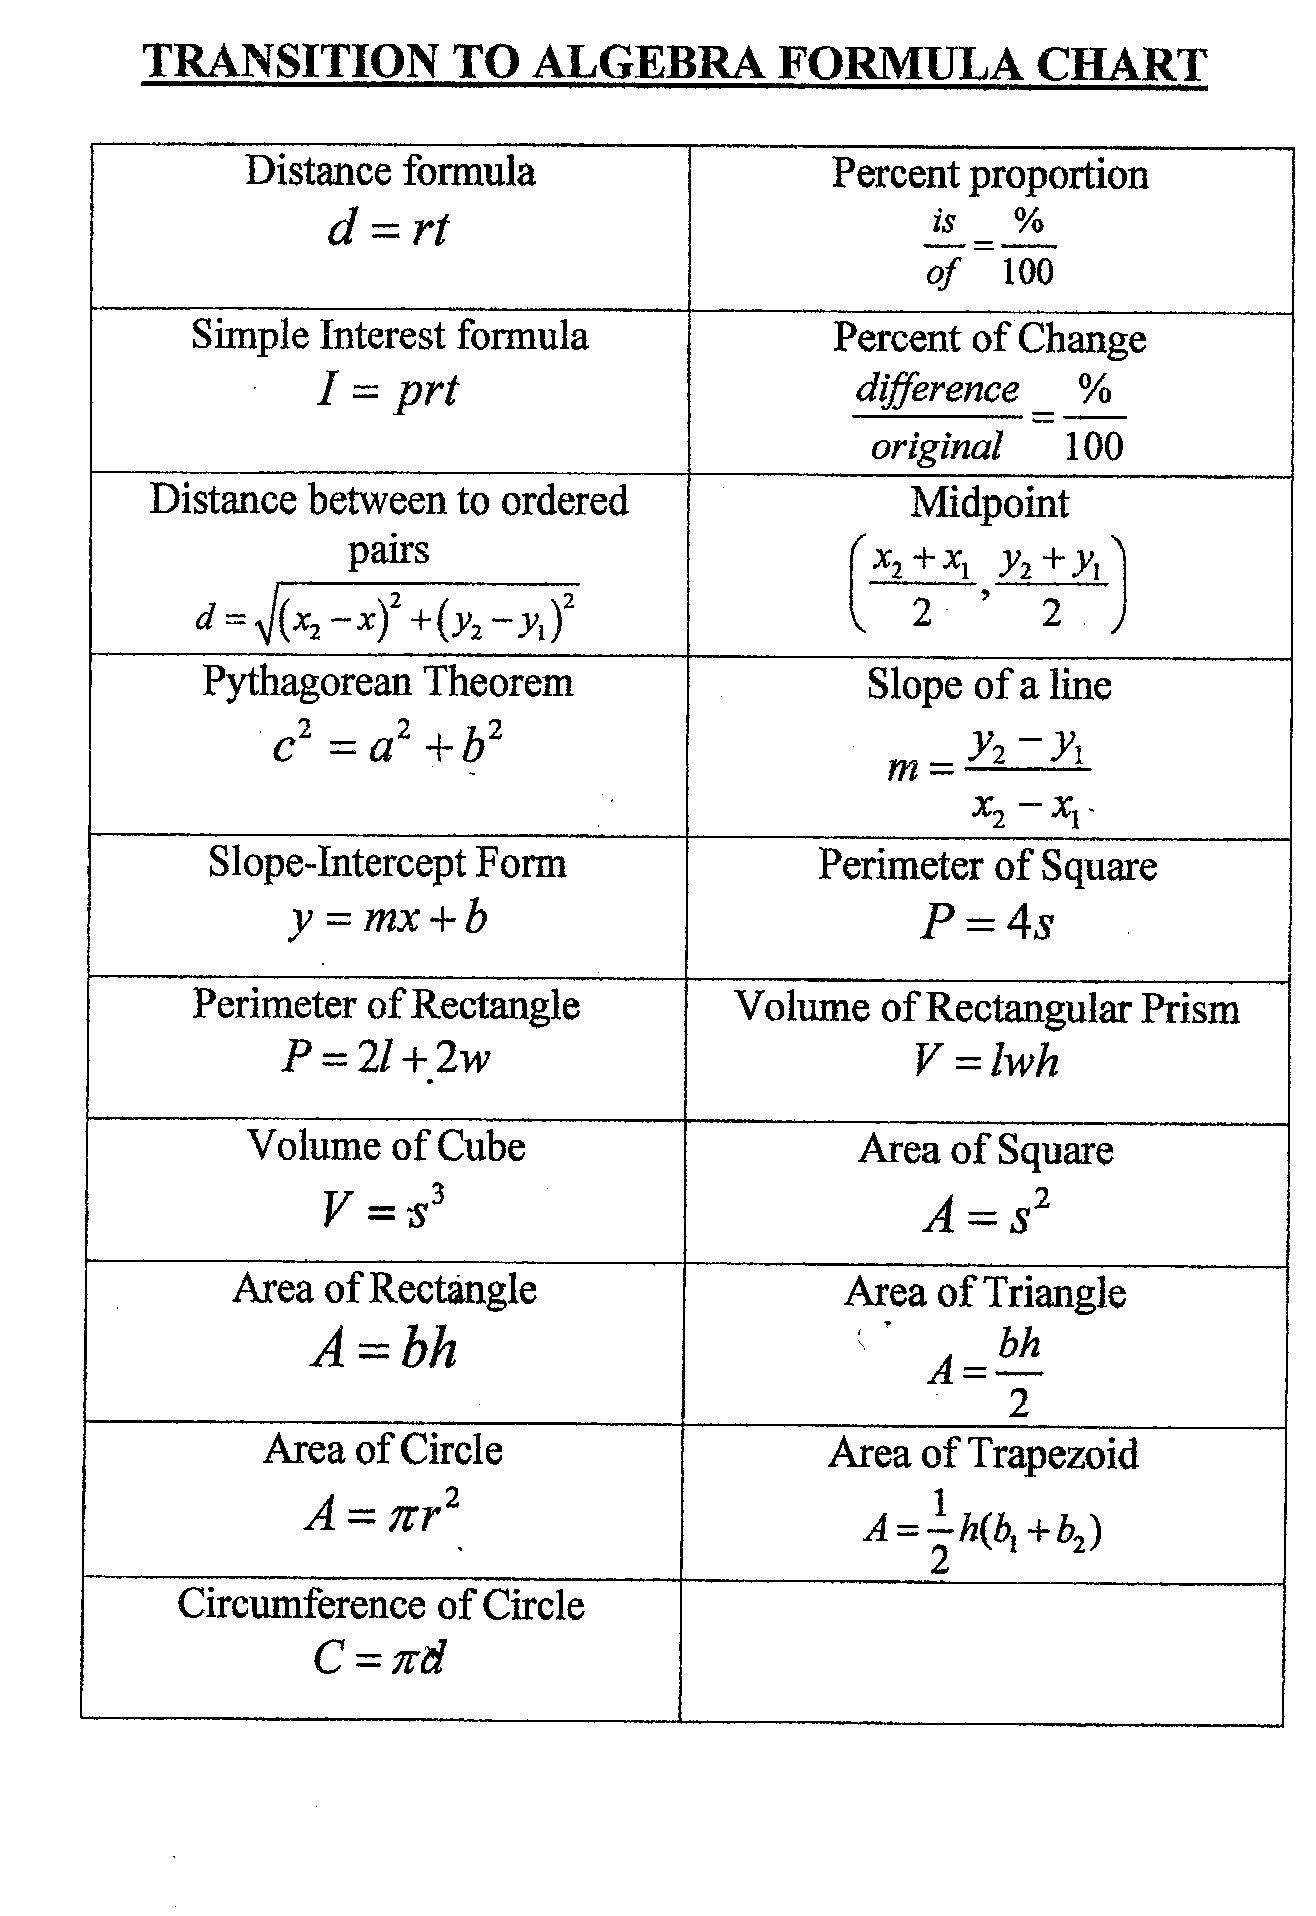 Math Cheat Sheet For Algebra 1